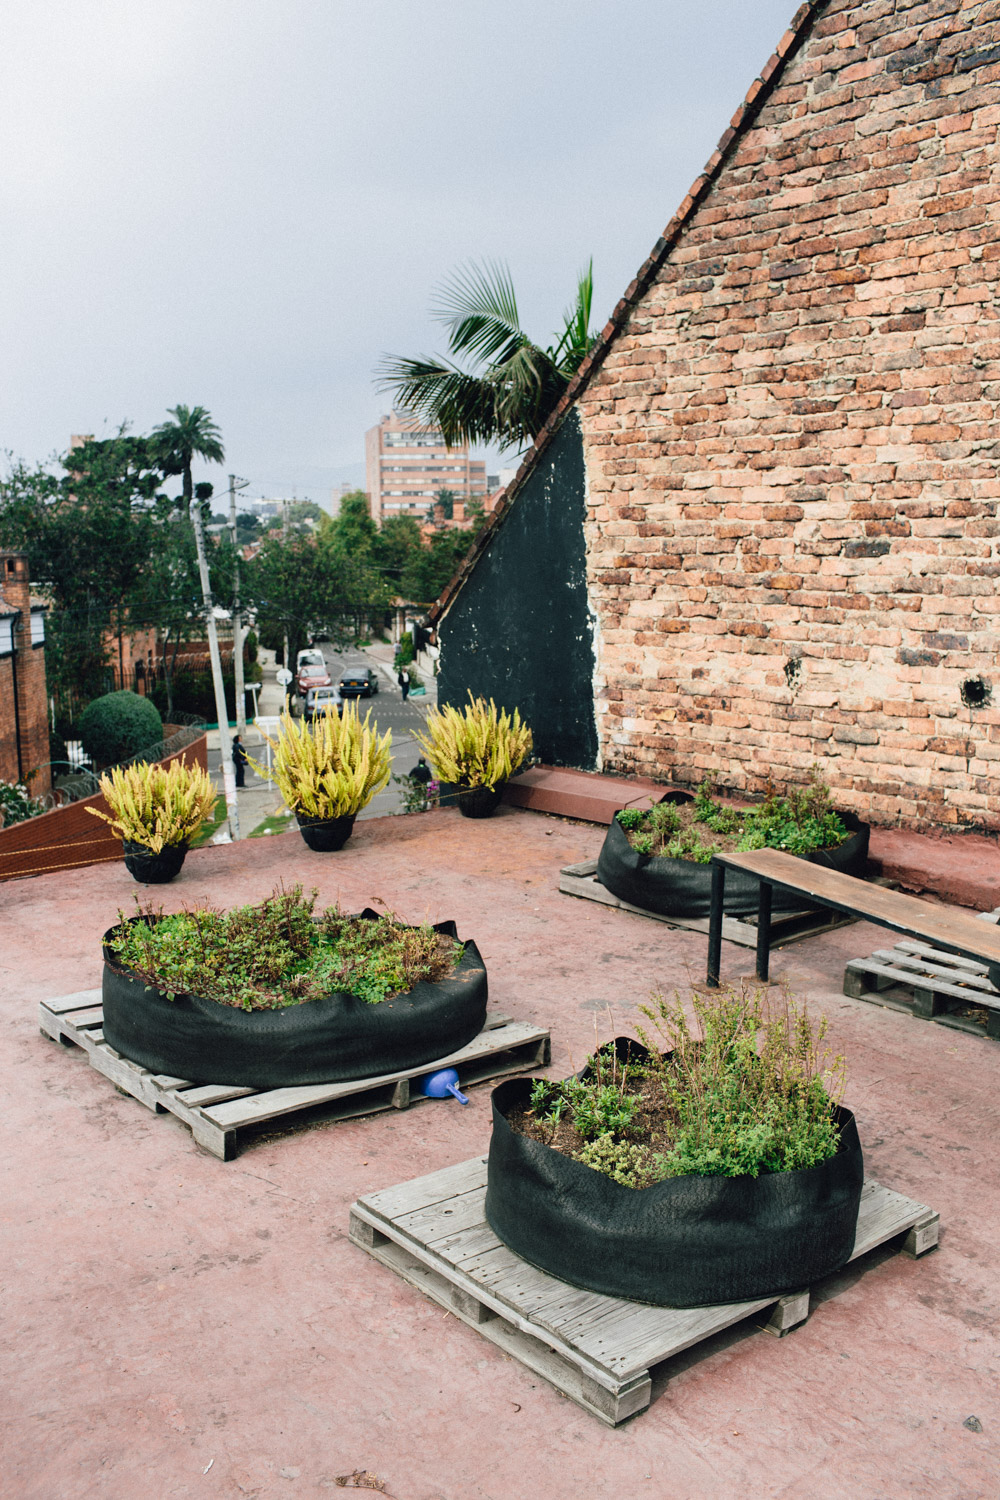 Rooftop herb garden where El Chato grows a variety of traditional and regional herbs for both their savory and sweet dishes.